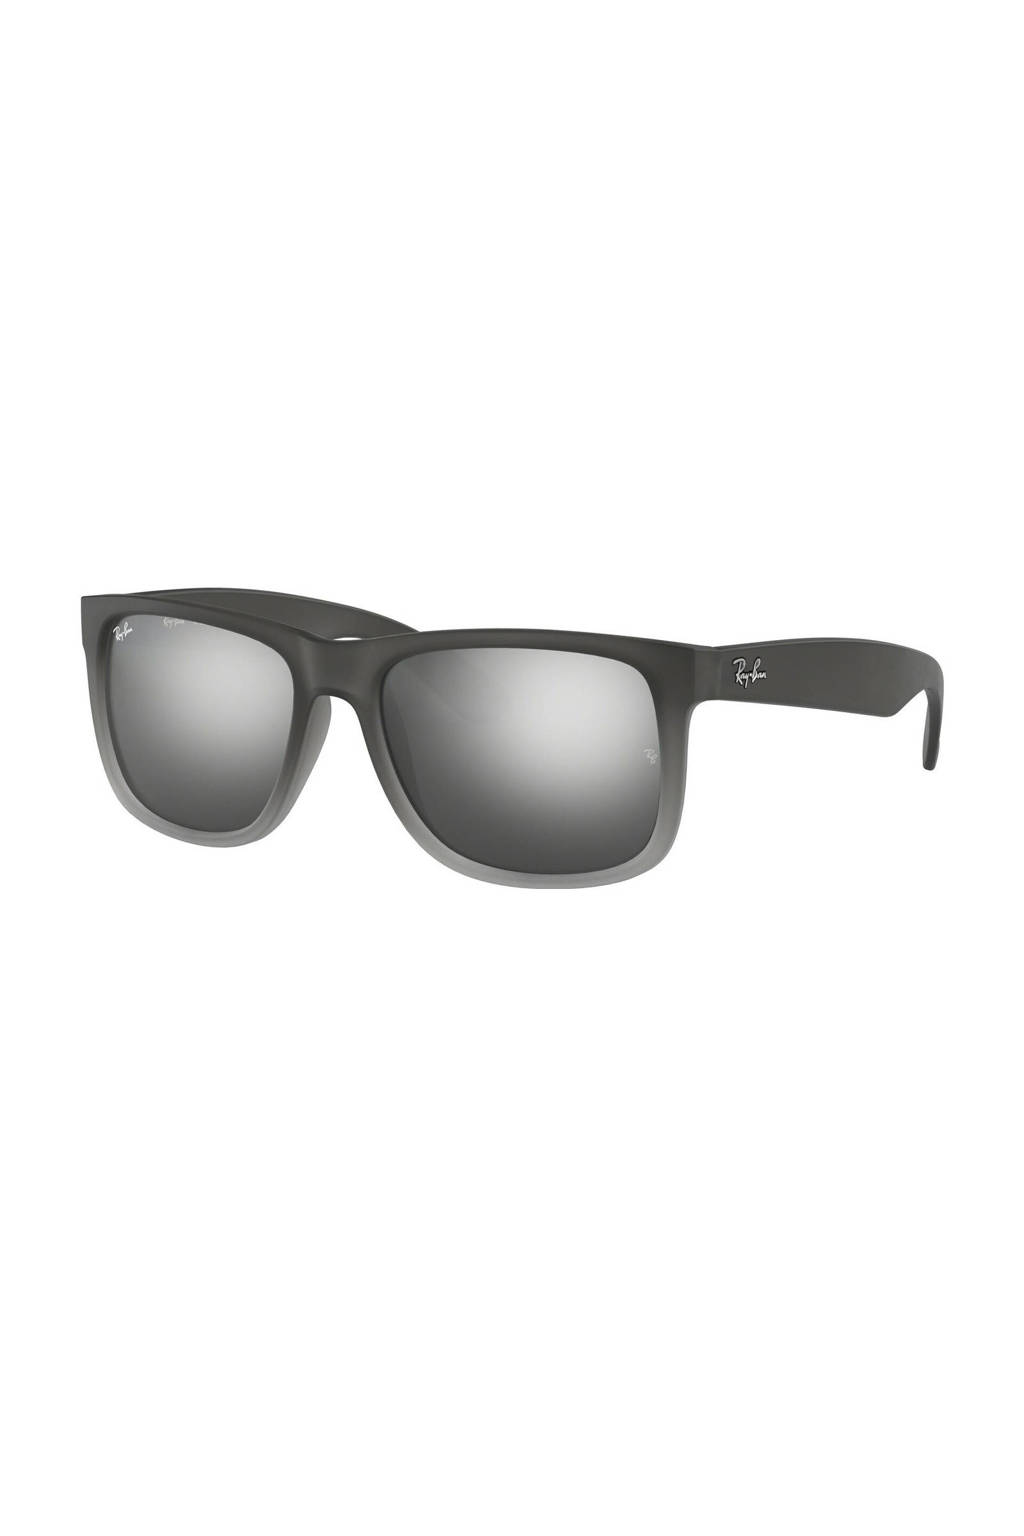 Ray-Ban zonnebril 0RB4165